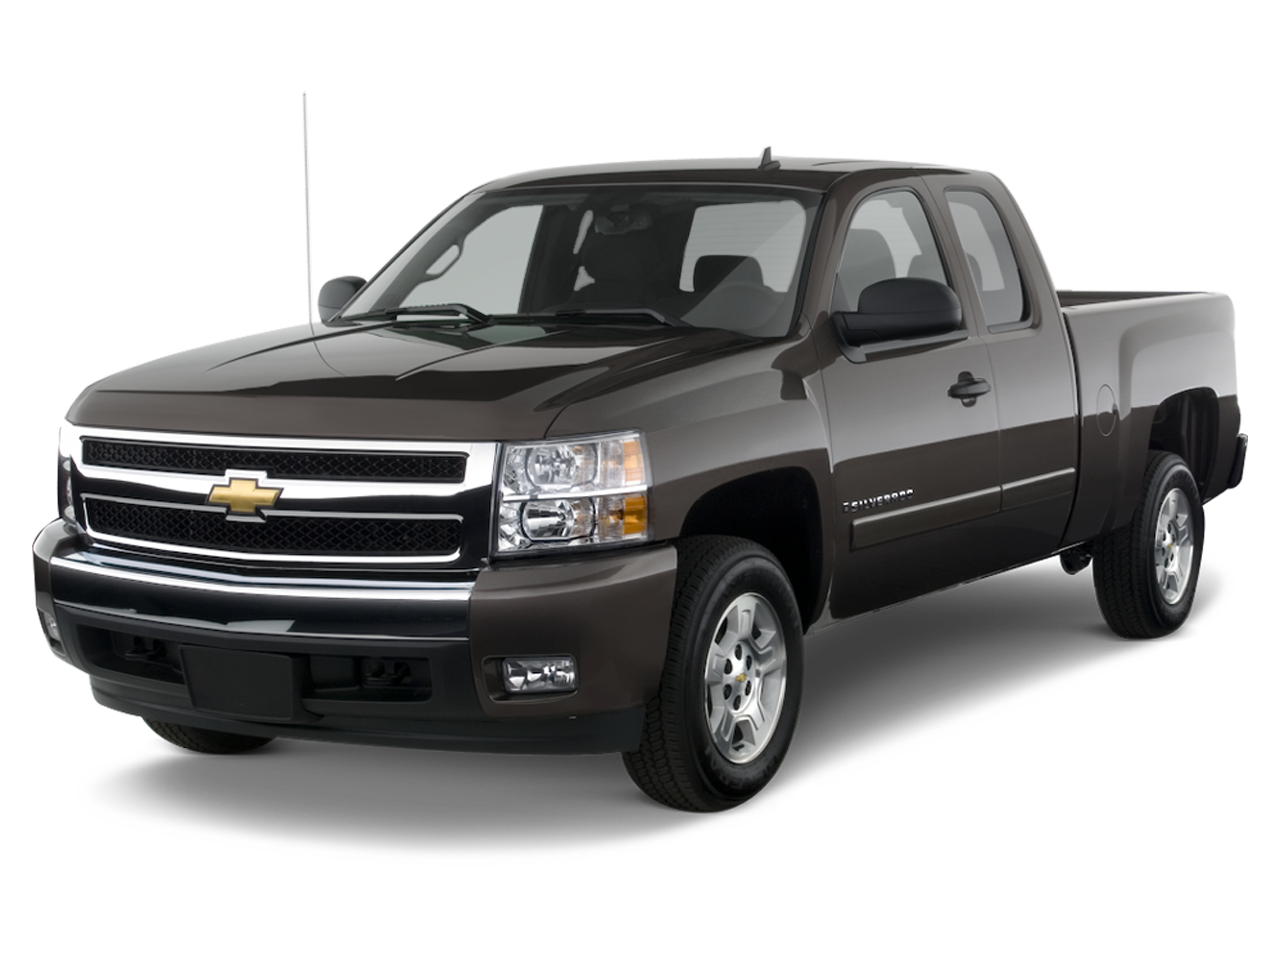 2010 chicago chevy shows off silverado hd 75th anniversary suburban. Black Bedroom Furniture Sets. Home Design Ideas